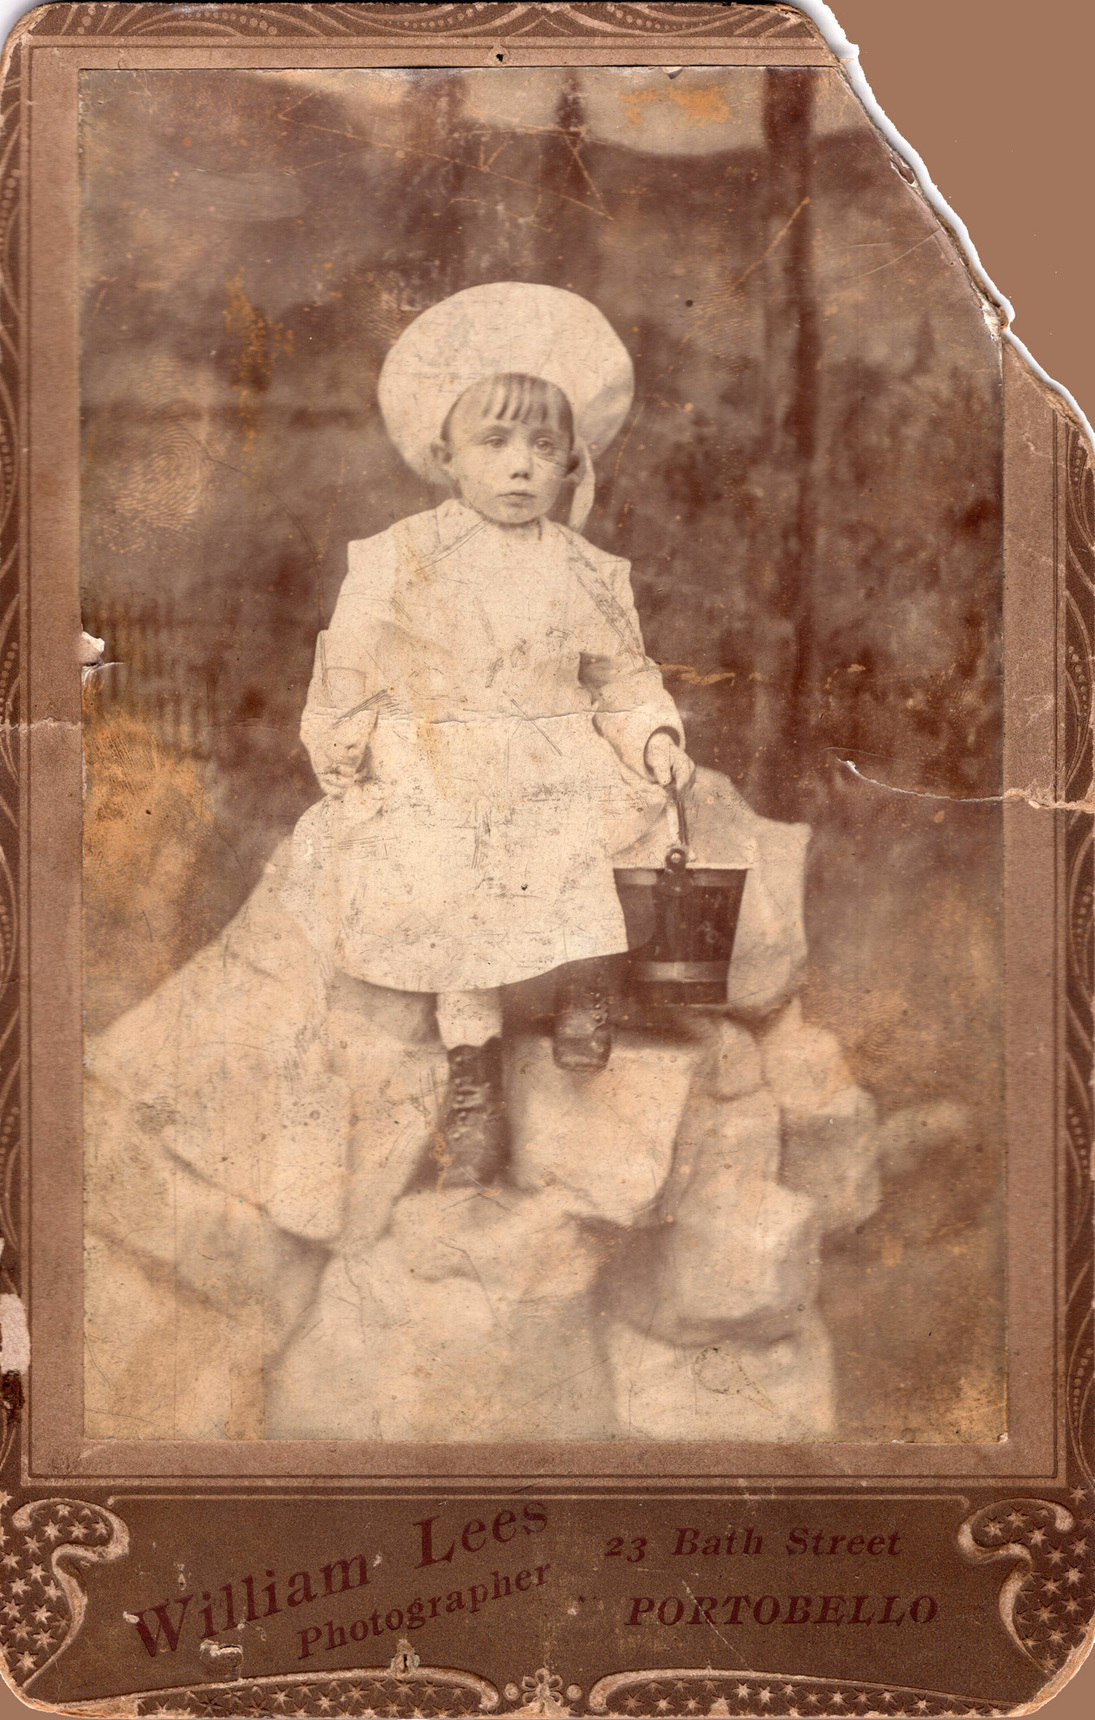 Studio Portrait Child Sitting On Rocks With Bucket And Spade c.1910